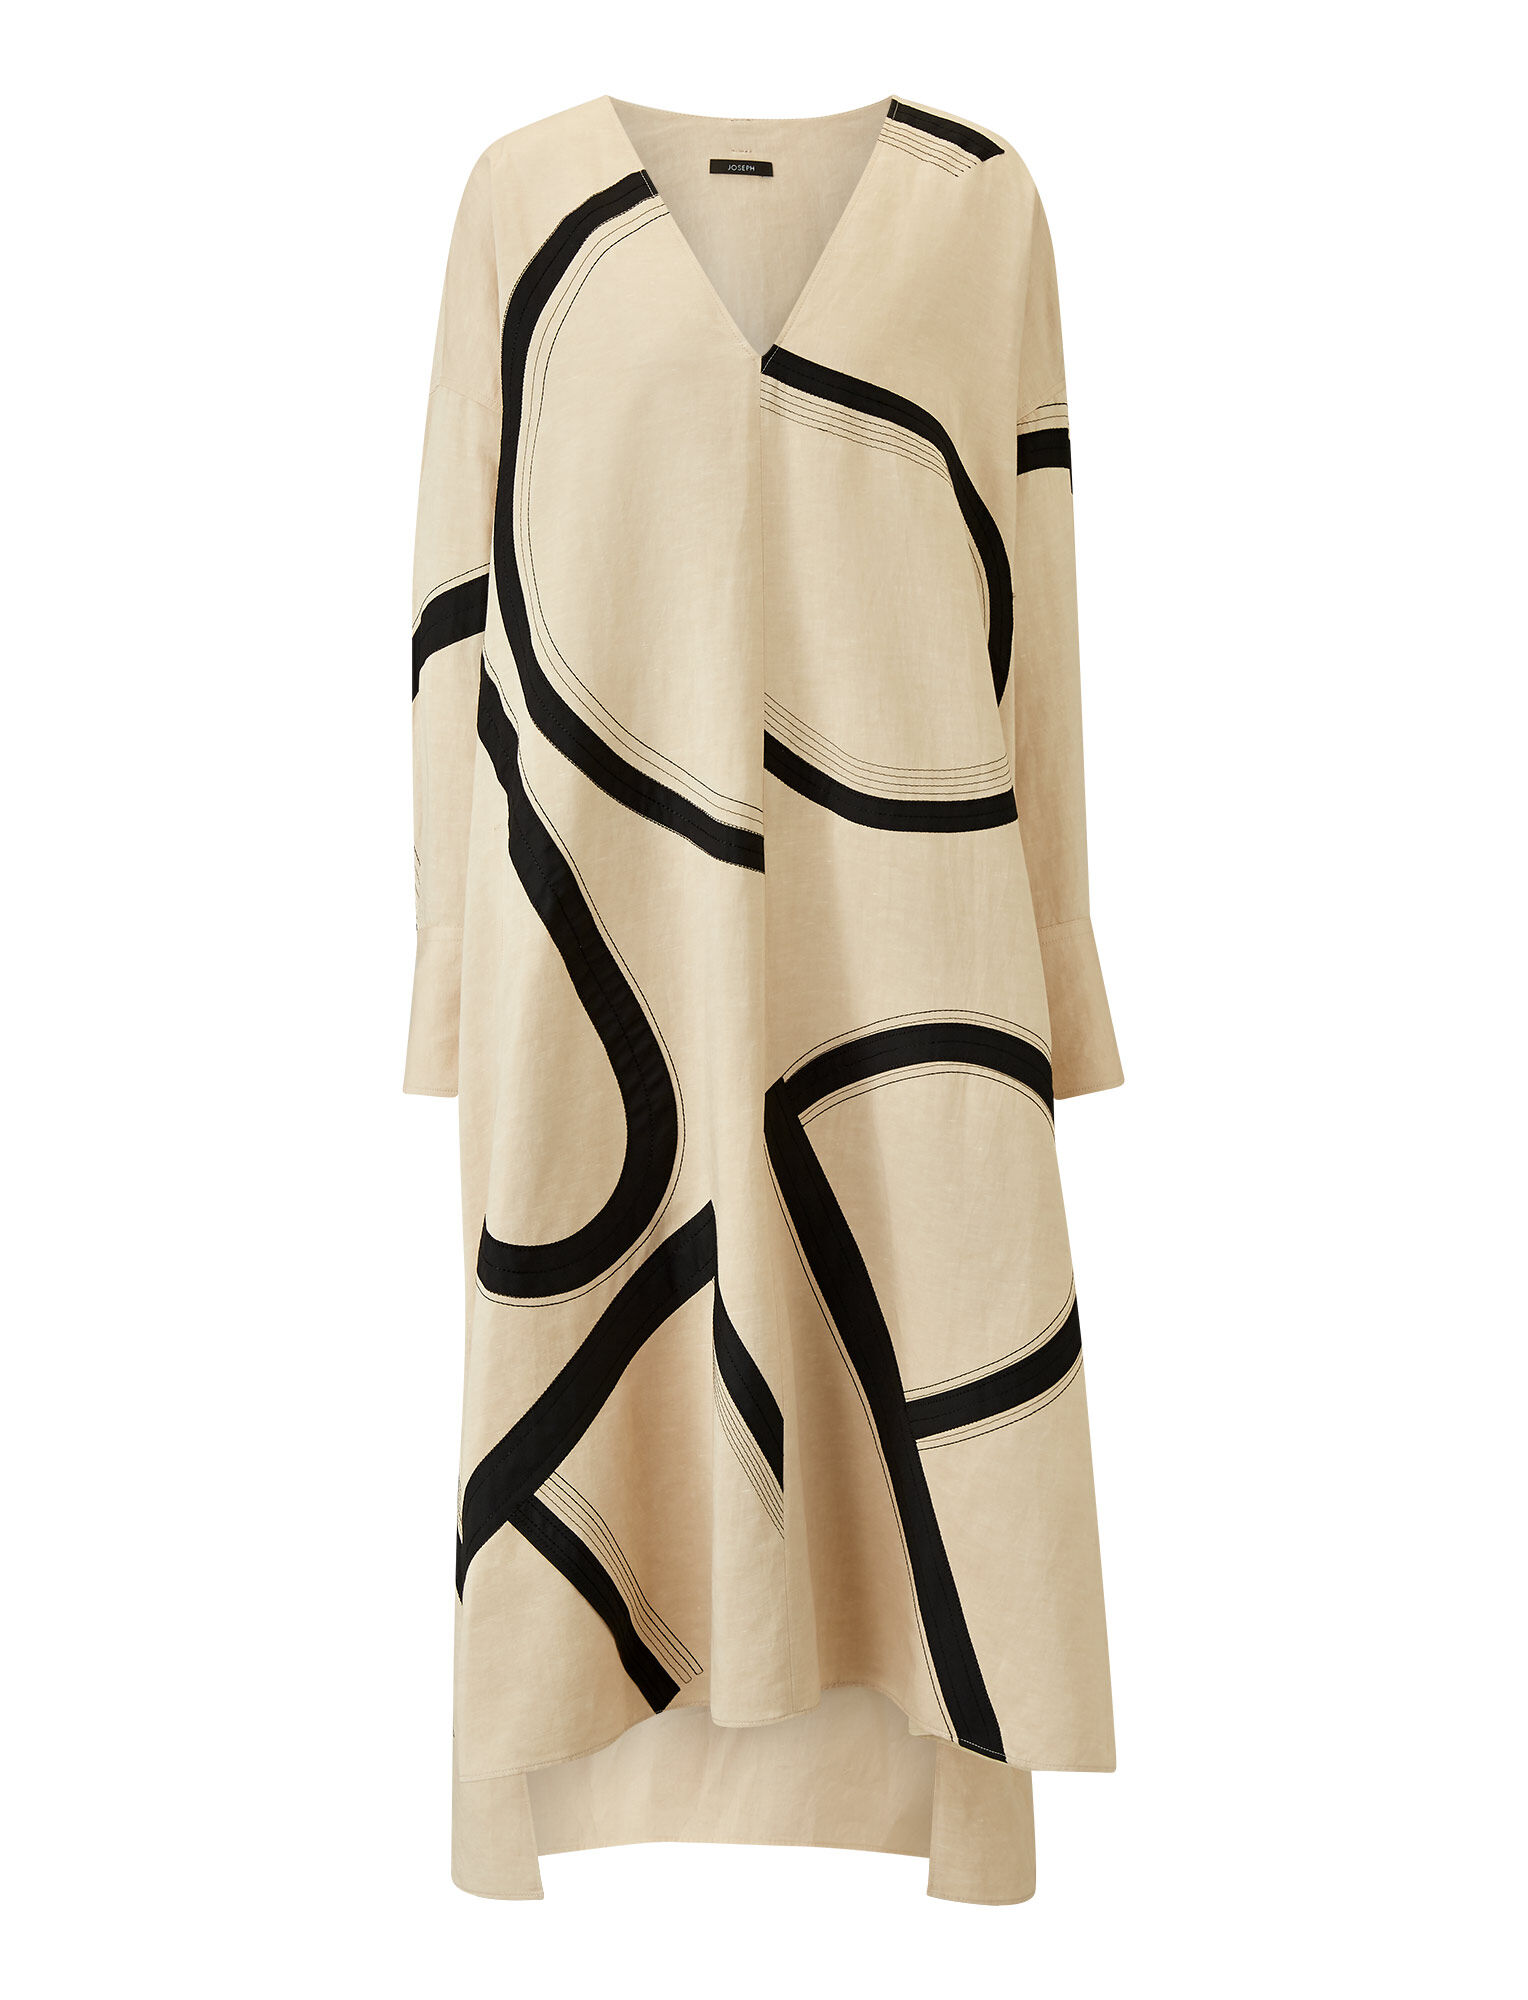 Joseph, Dalamo Poplin Blanket Dress, in STRAW